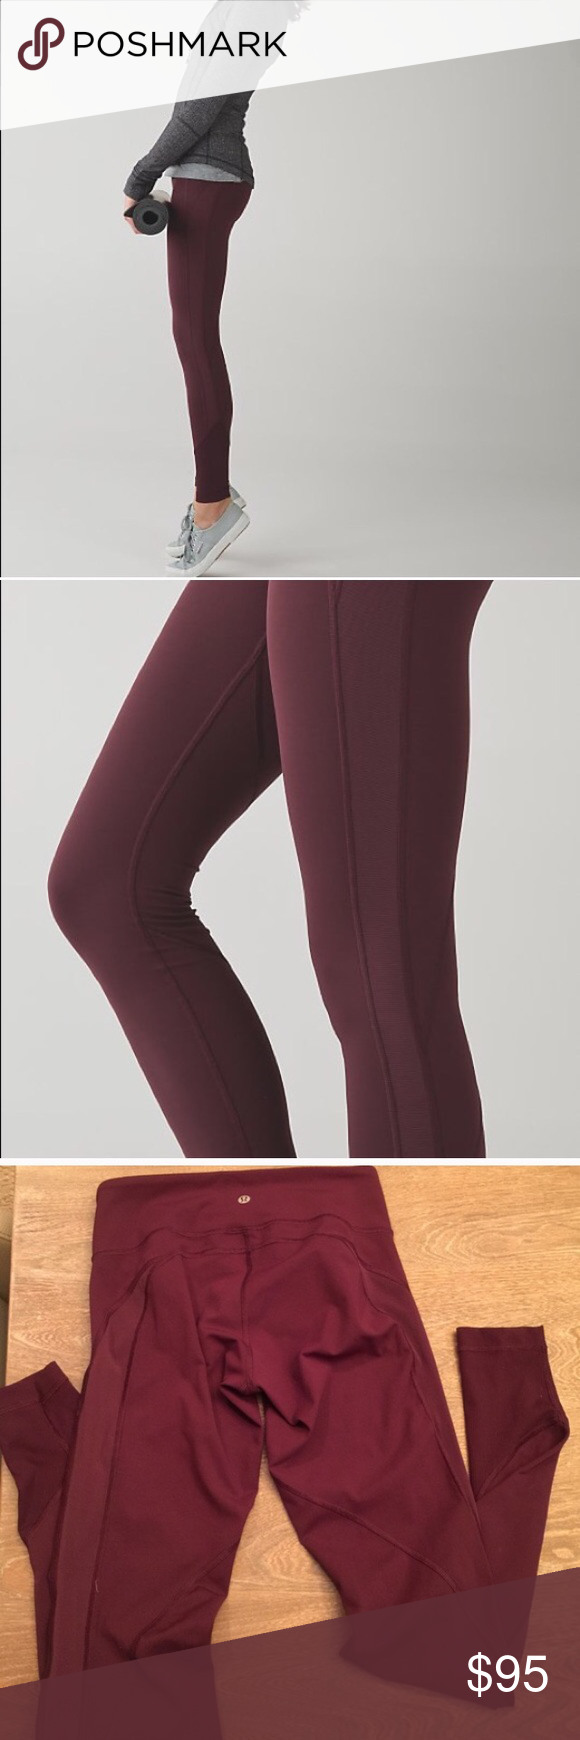 Lululemon Drop It Like Its Hot leggings 4 burgundy Lululemon drop it like its hot leggings in size 4, burgundy with opaque mesh paneling down the sides. Worn and washed once. I think I'm really more of a plain black yoga pants person, so these are ready for a new home. Luxtreme fabric. lululemon athletica Pants Leggings